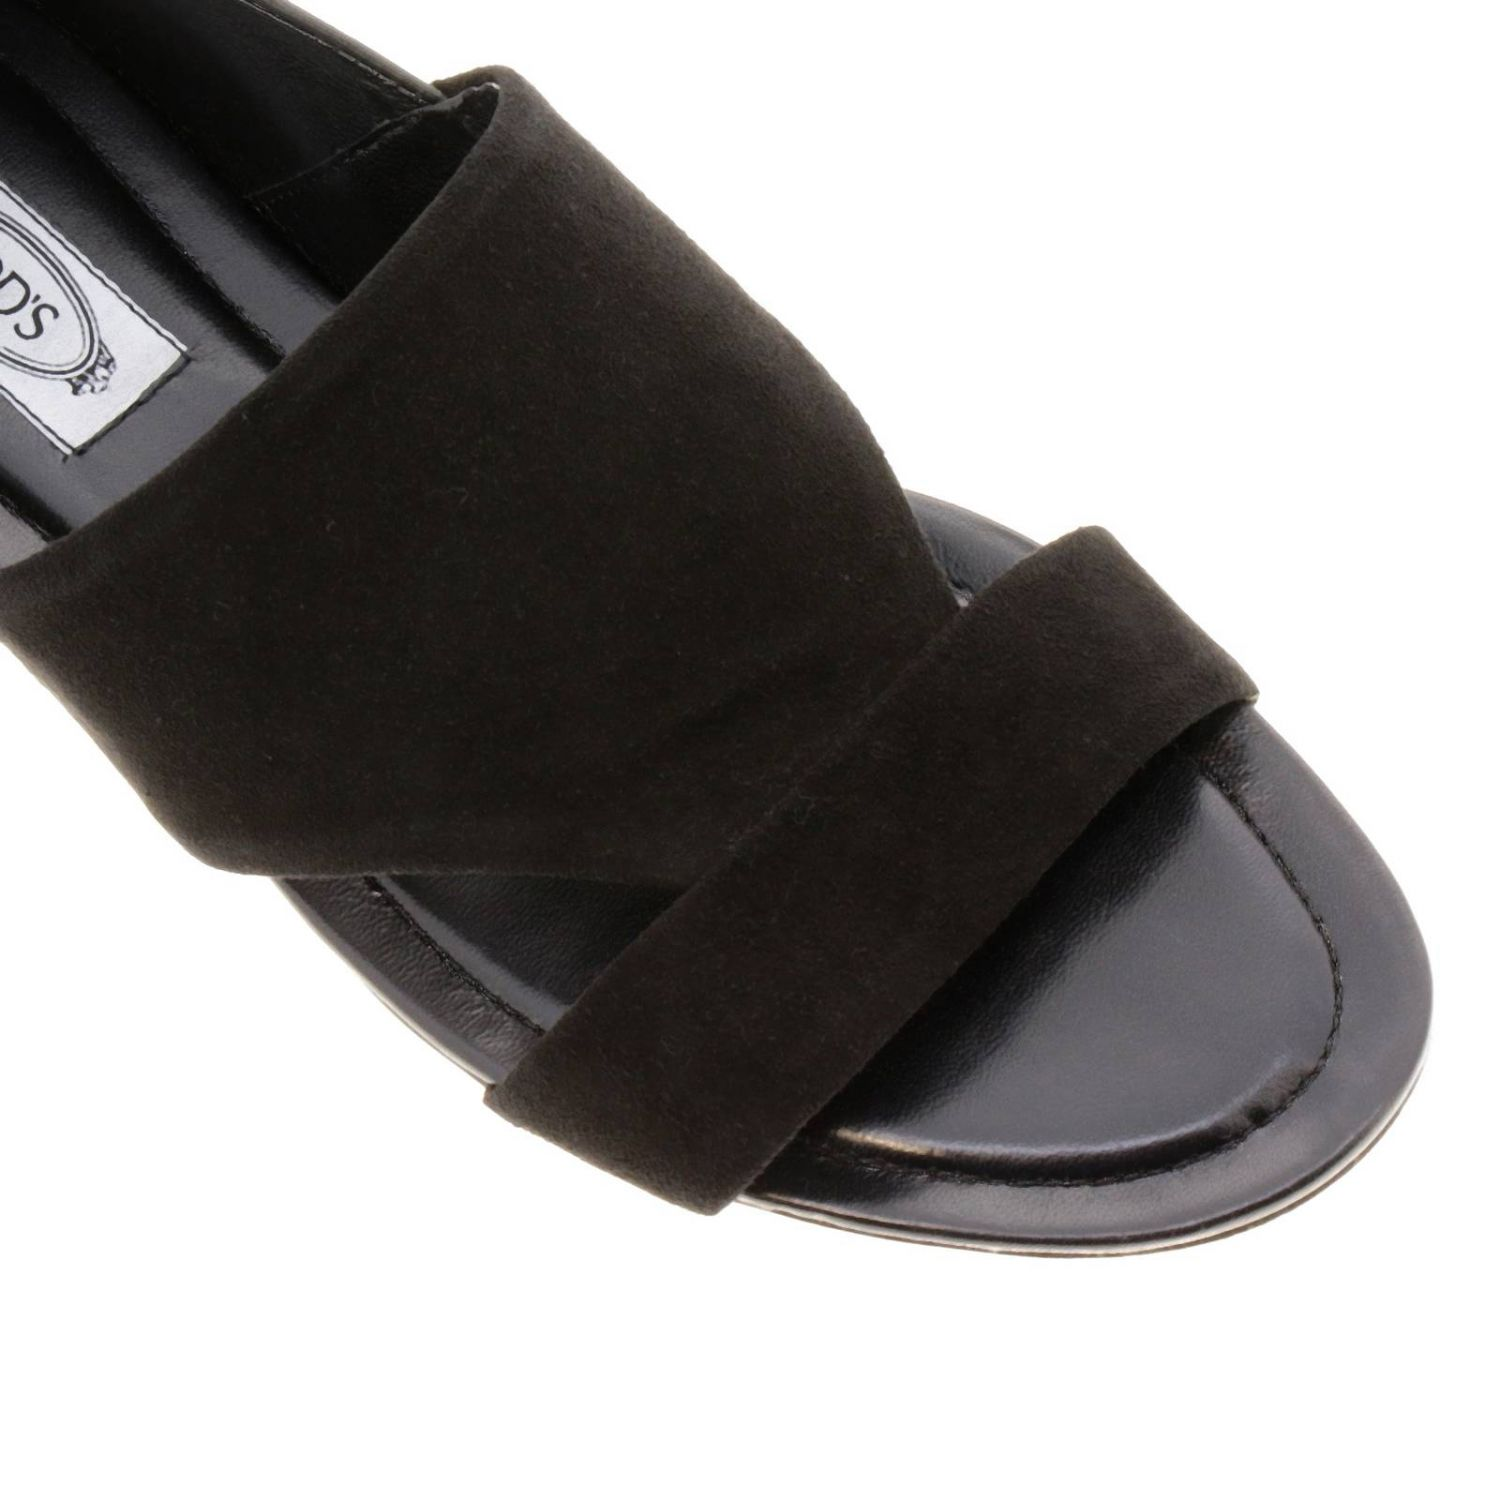 Sandales plates Tods: Chaussures femme Tod's noir 3